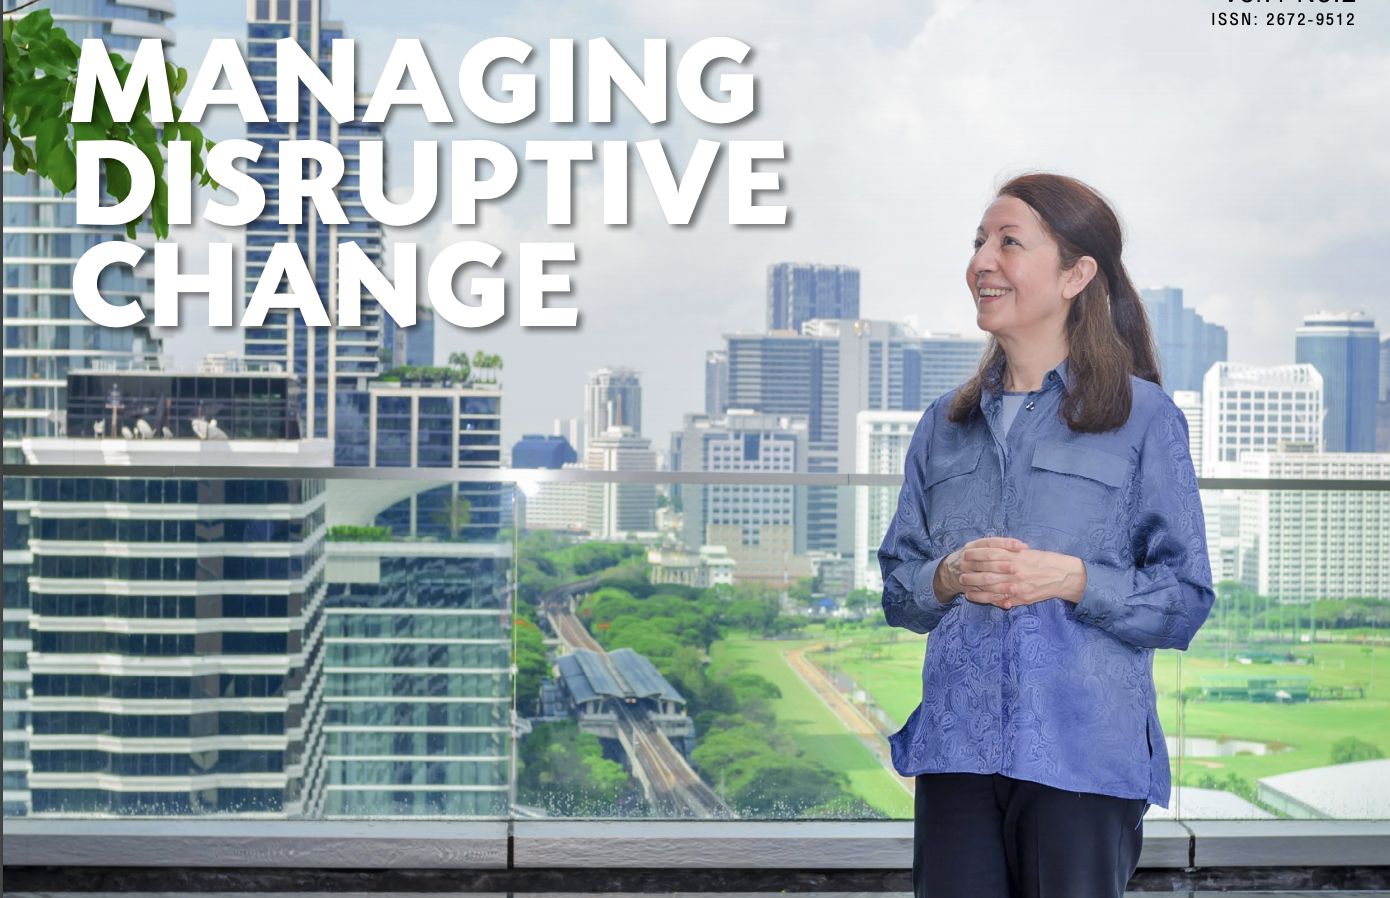 Homa Bahrami on a building balcony with text overlay saying Managing Disruptive Change